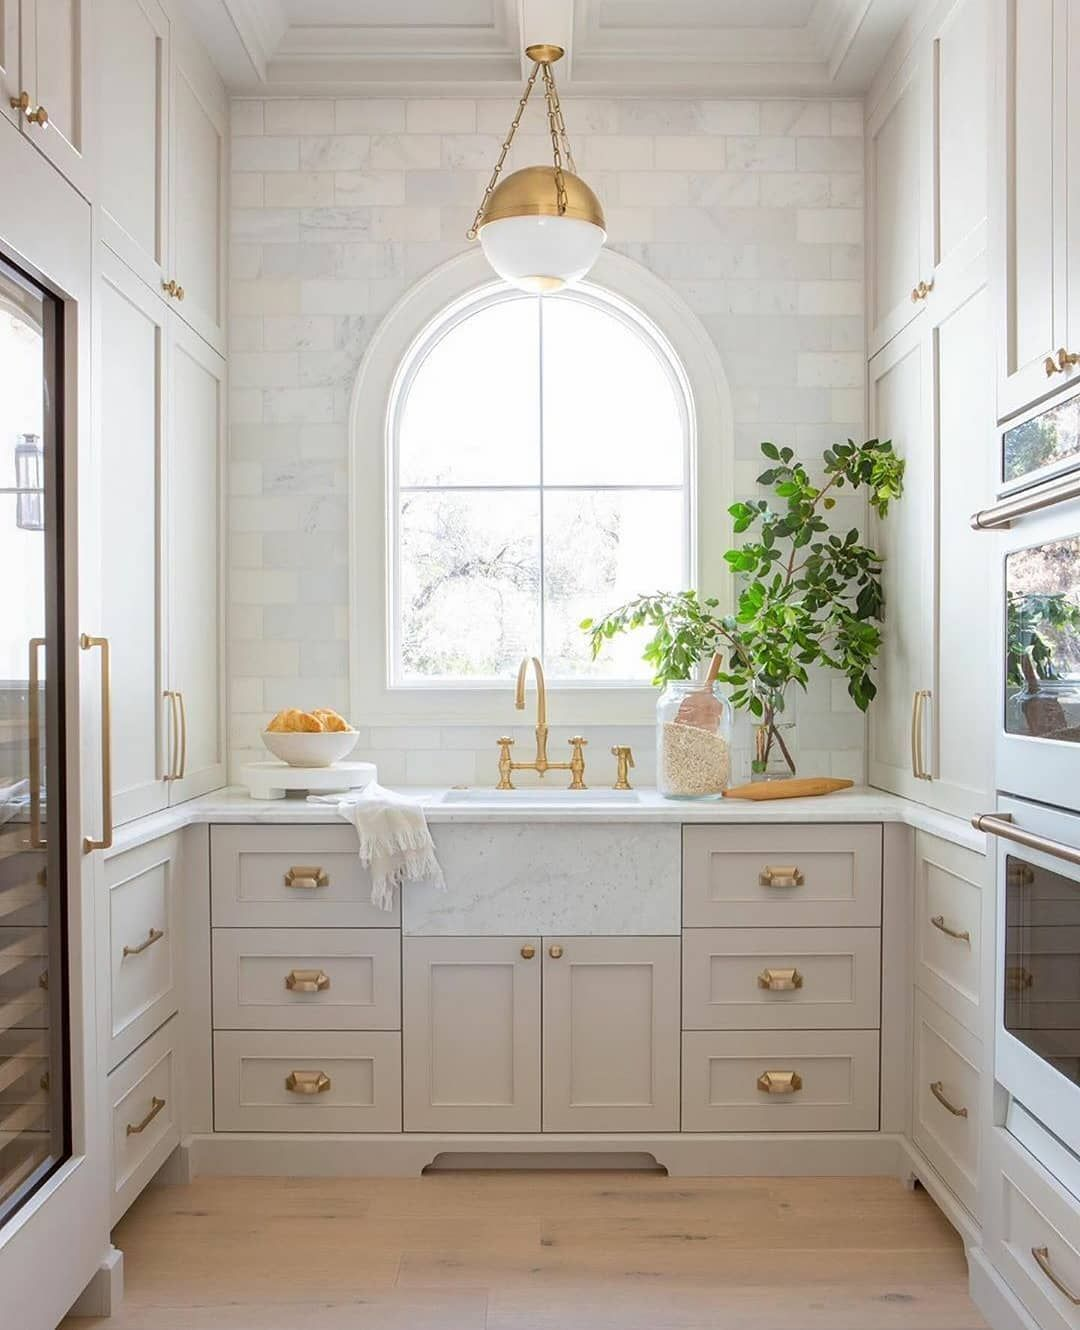 Sharing Our Moodboard Resources And Where To Shop From Our English Cottage Kitchen Inspiration With Greige K In 2020 Kitchen Inspirations Kitchen Design Pantry Design